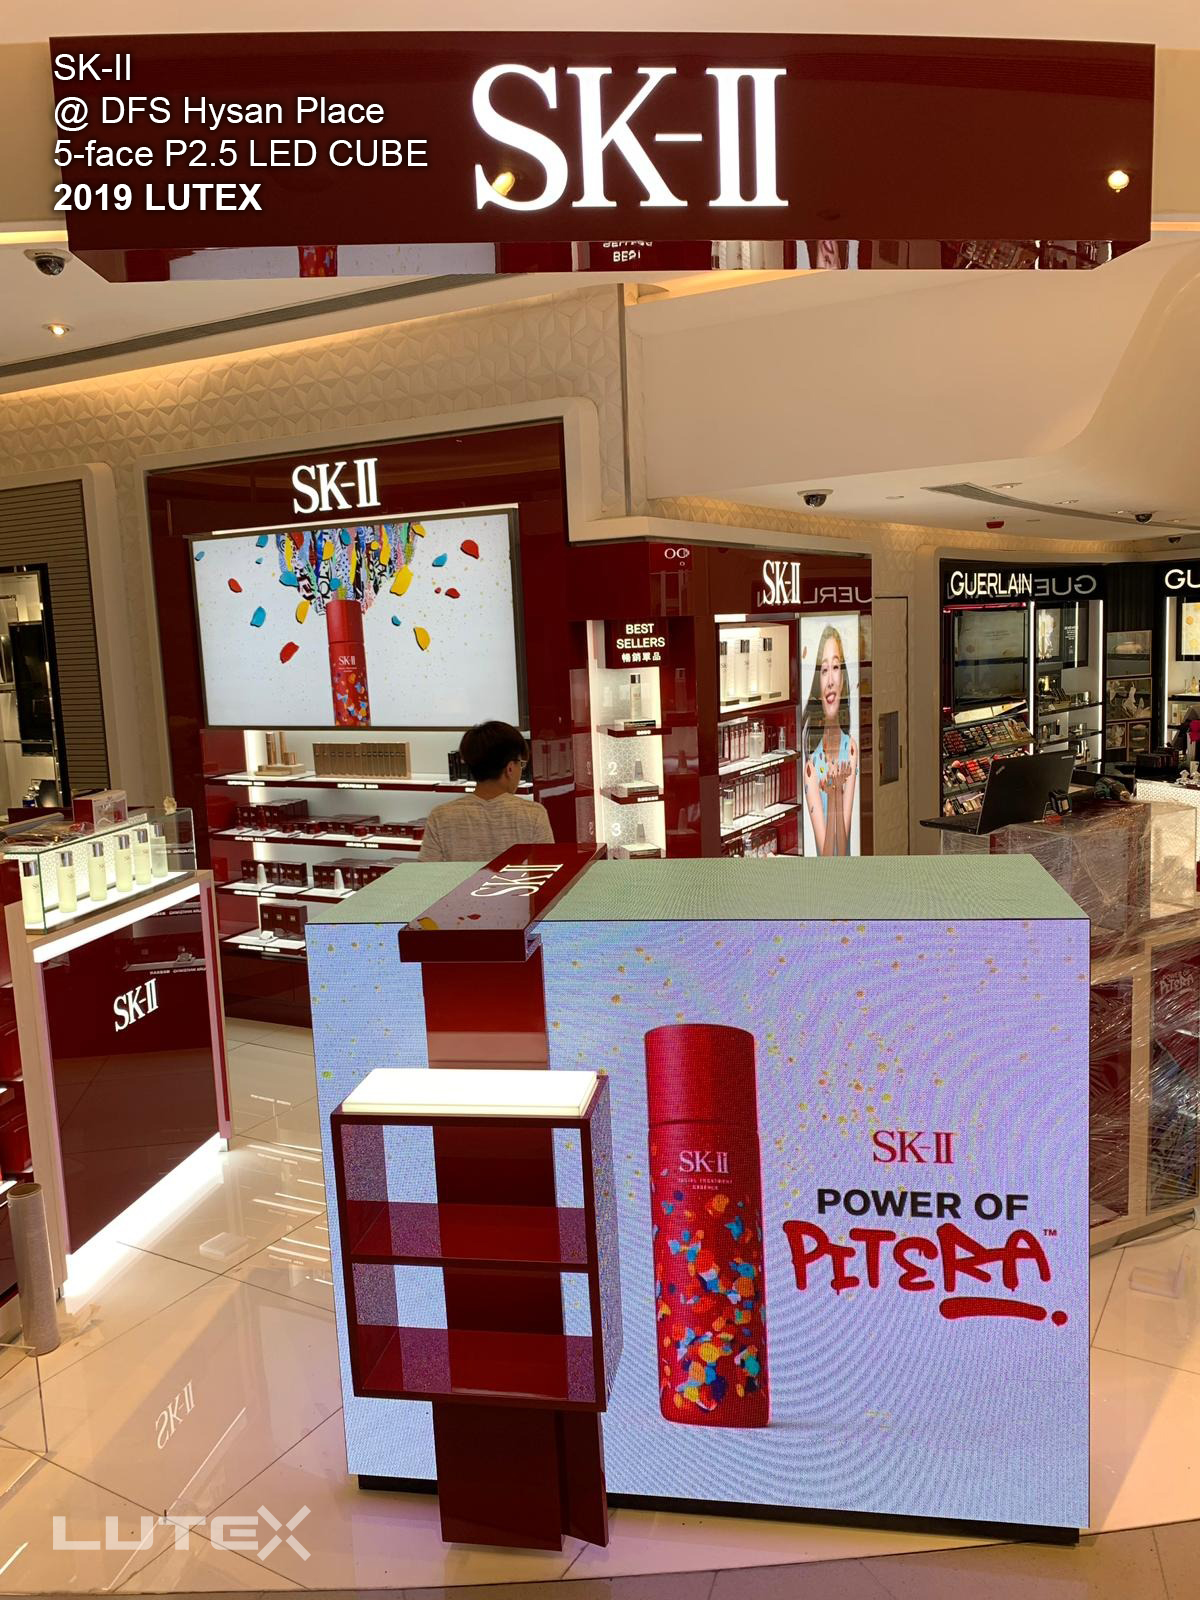 SK-II DFS Hysan Place 5-face P2